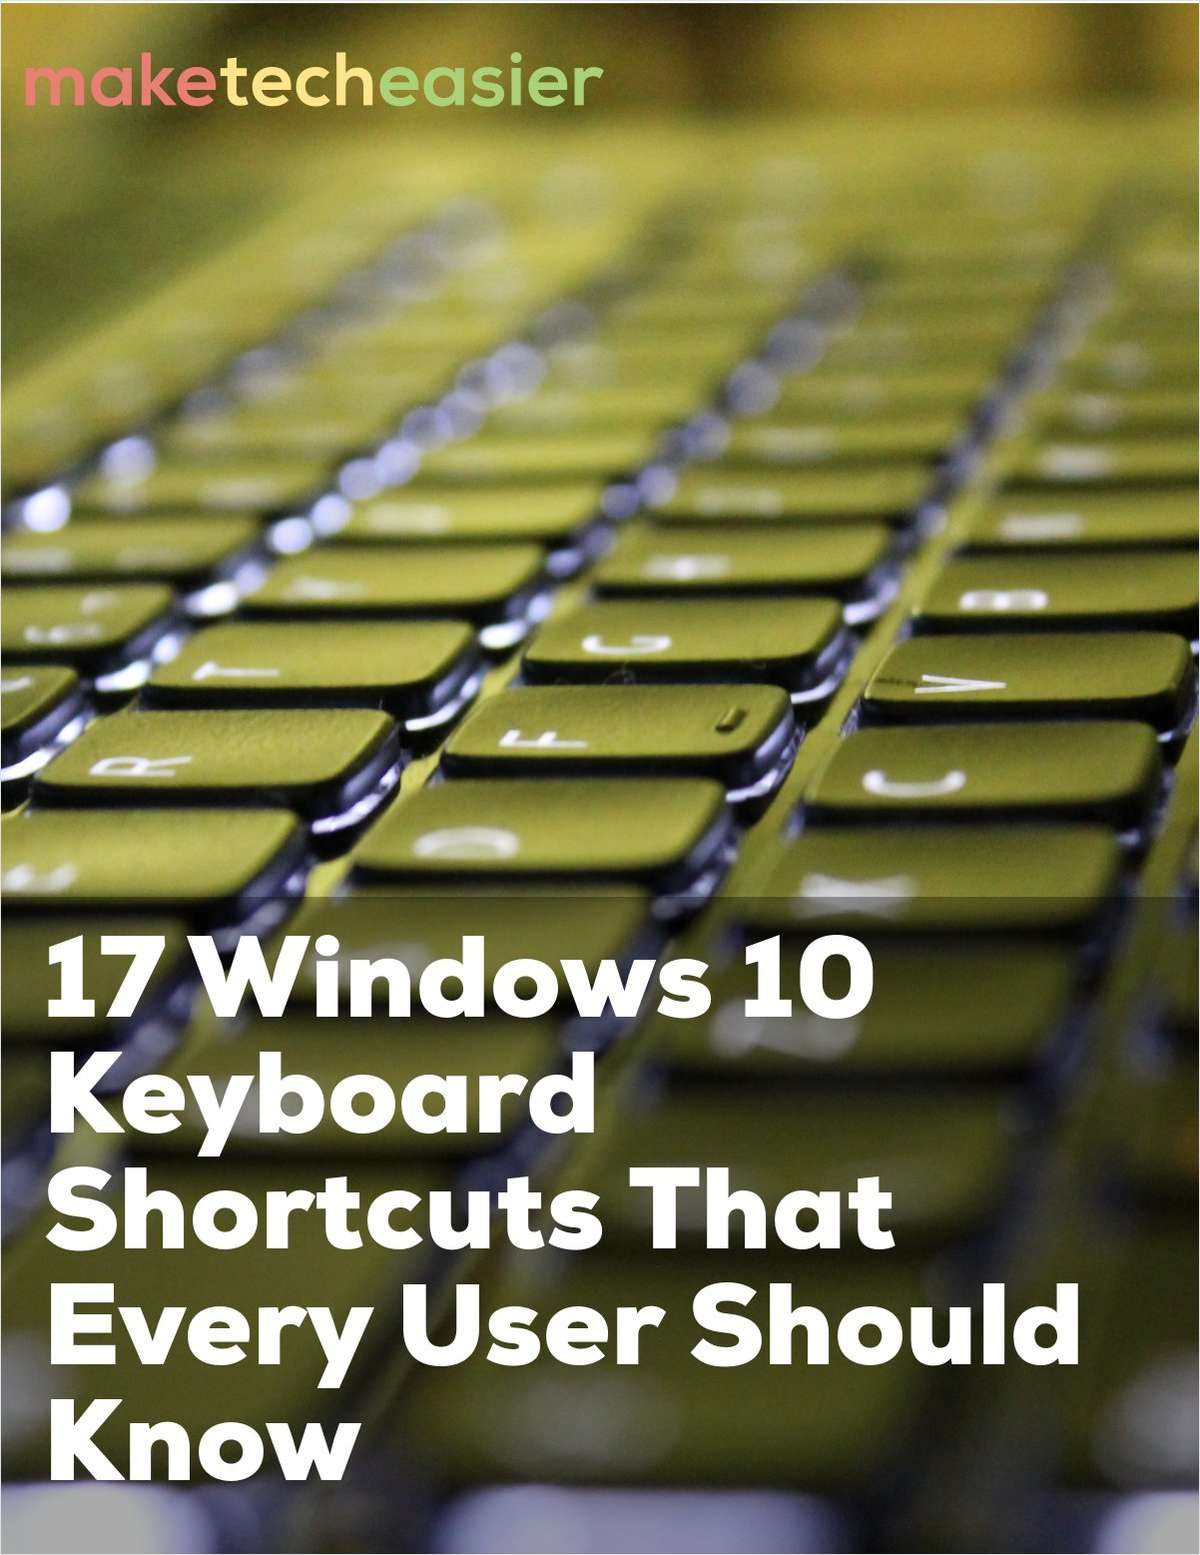 17 Windows 10 Keyboard Shortcuts That Every User Should Know